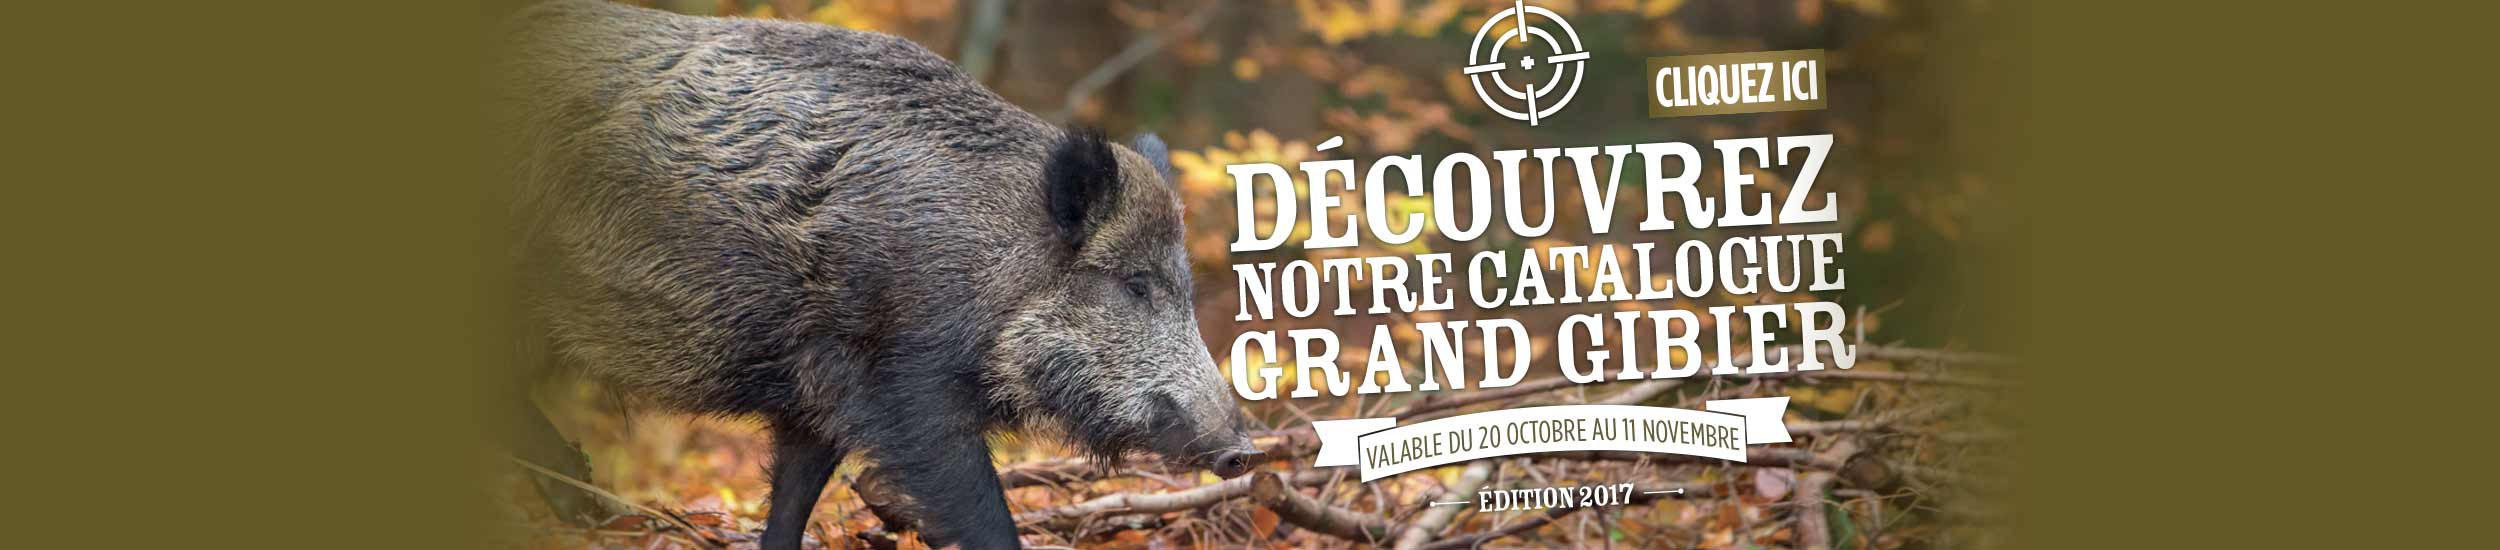 CATALOGUE GRAND GIBIER